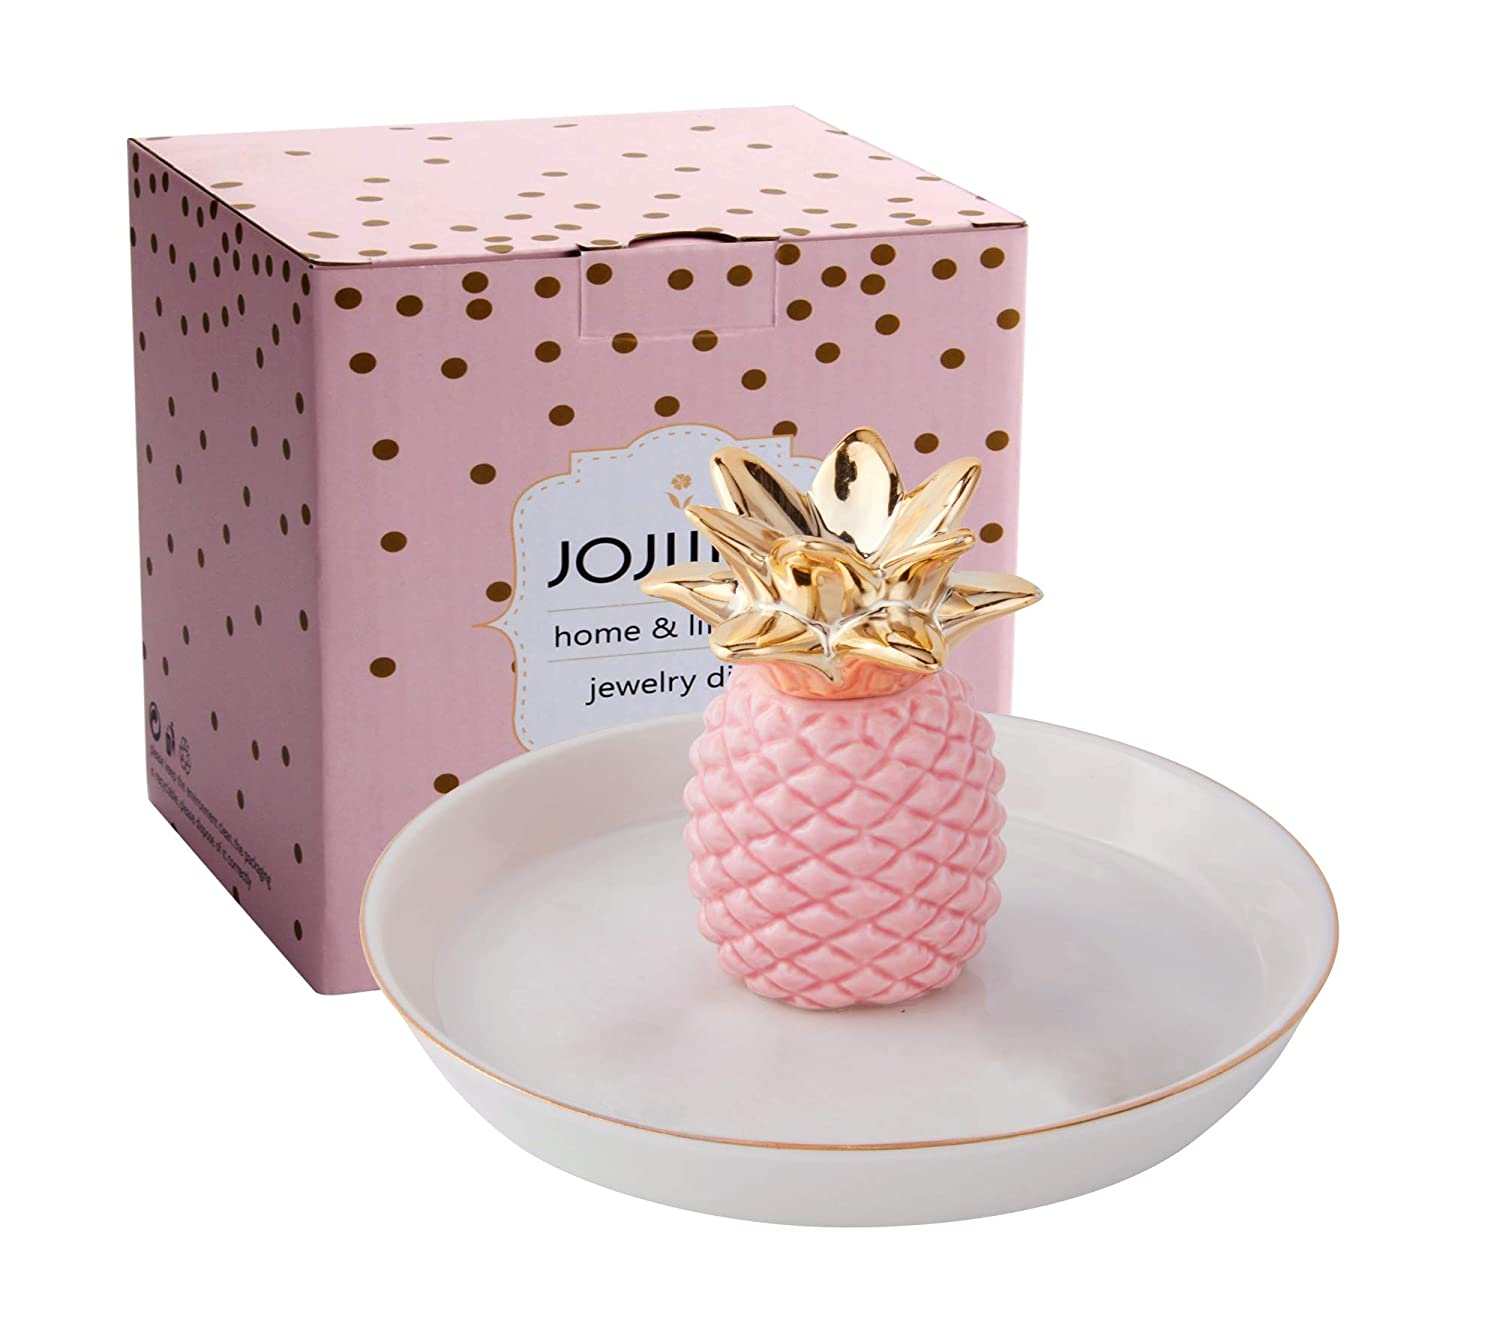 Jojuno Ceramic Ring Jewelry Holder Decor Dish Organizer, Jewelry Tray, Pink Pineapple Jewelry Plate Size 139 x 139 x 84mm 5.47 x 5.47 x 3.3in